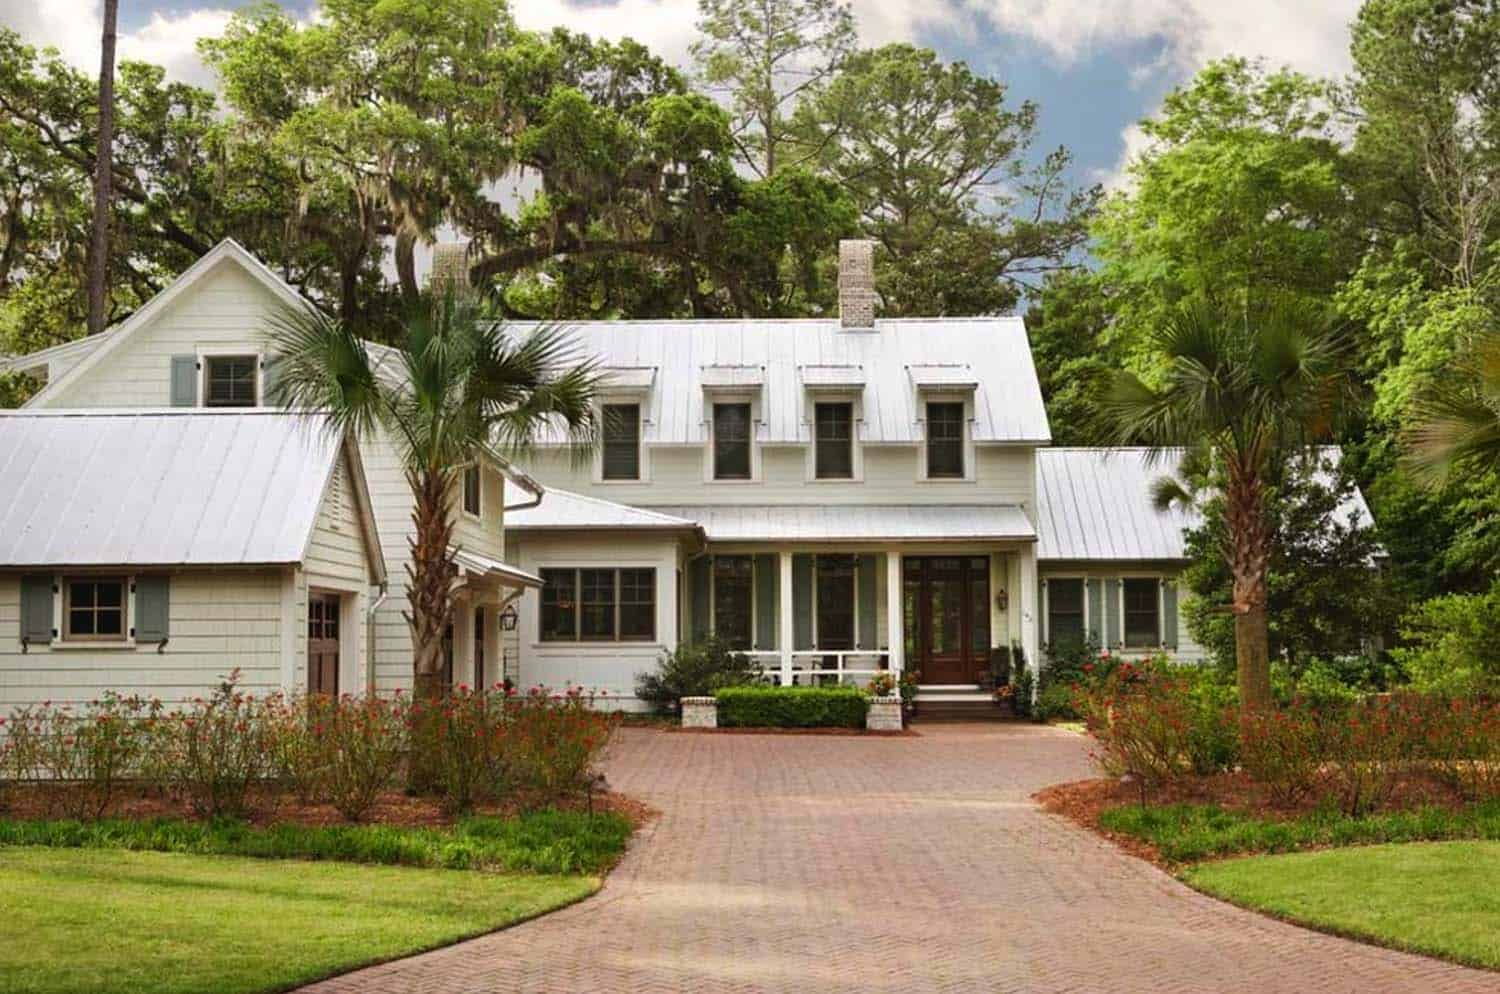 Lowcountry style home in south carolina offers gorgeous for Low country homes